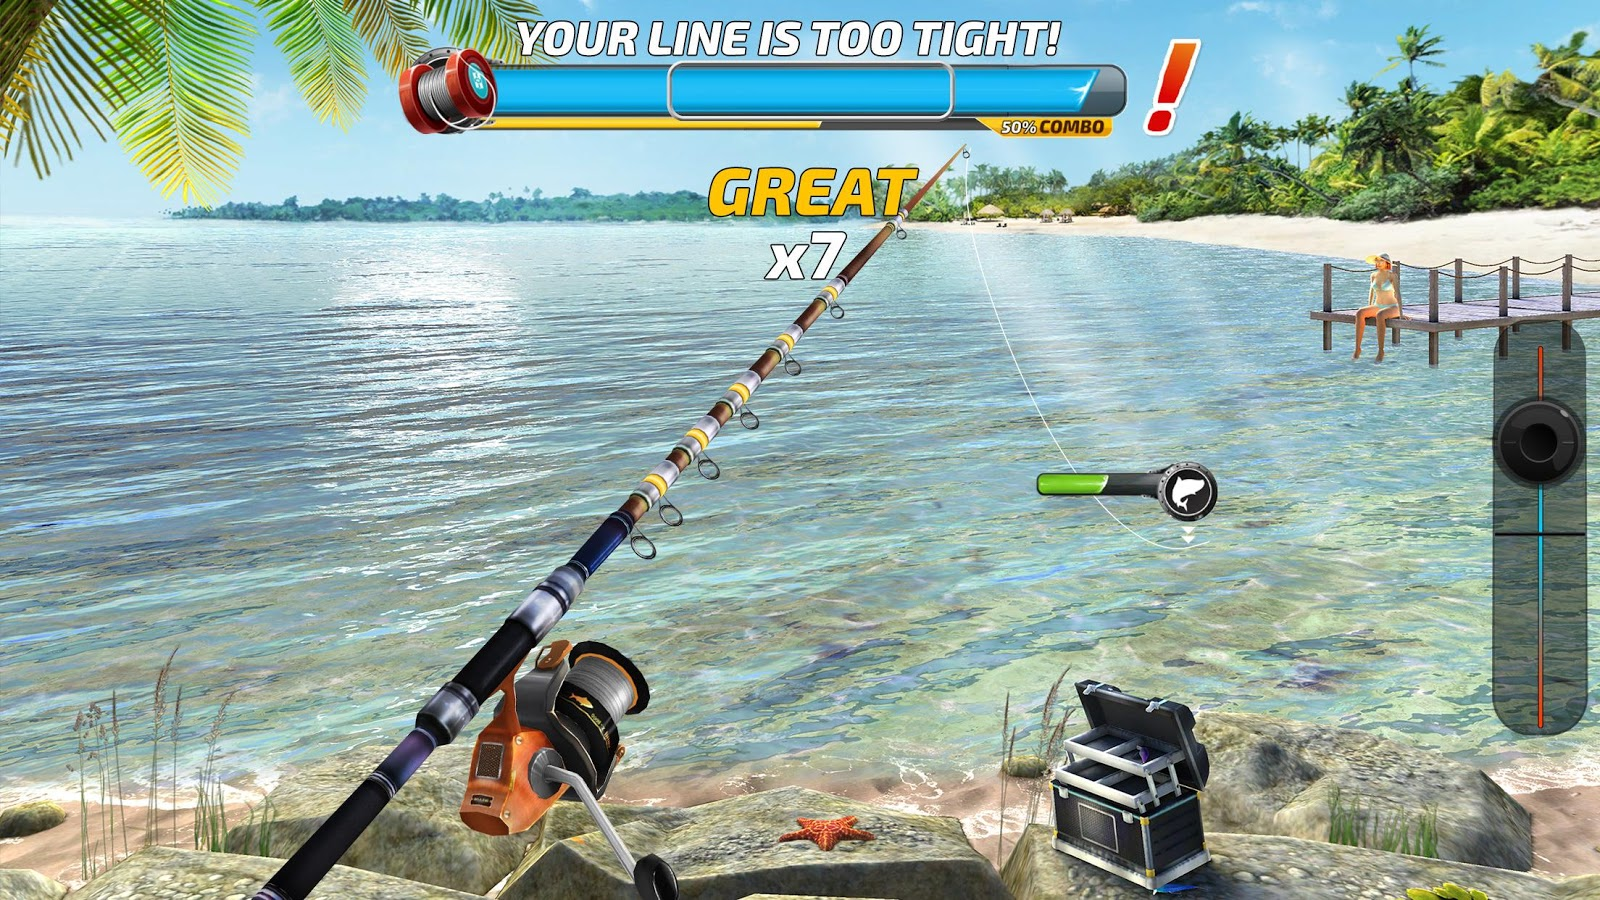 Fish Catching Games - Fishing Games Online